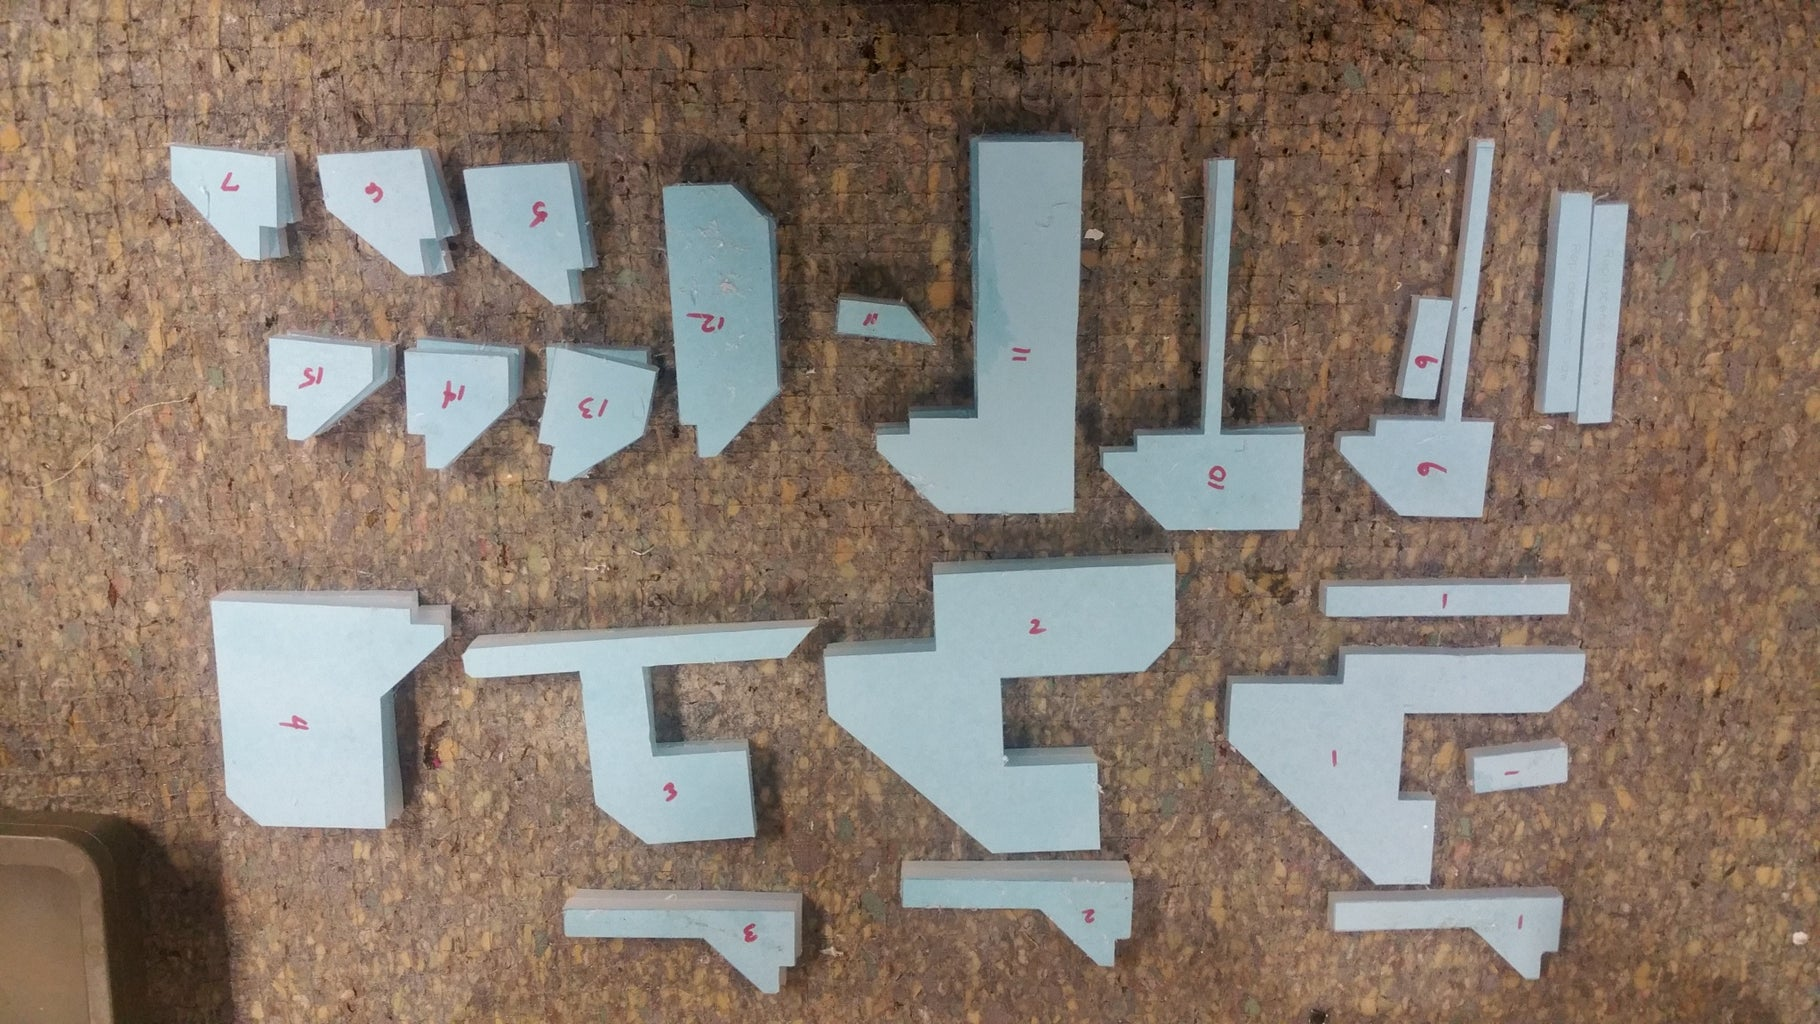 Cutting the Pieces From the Board